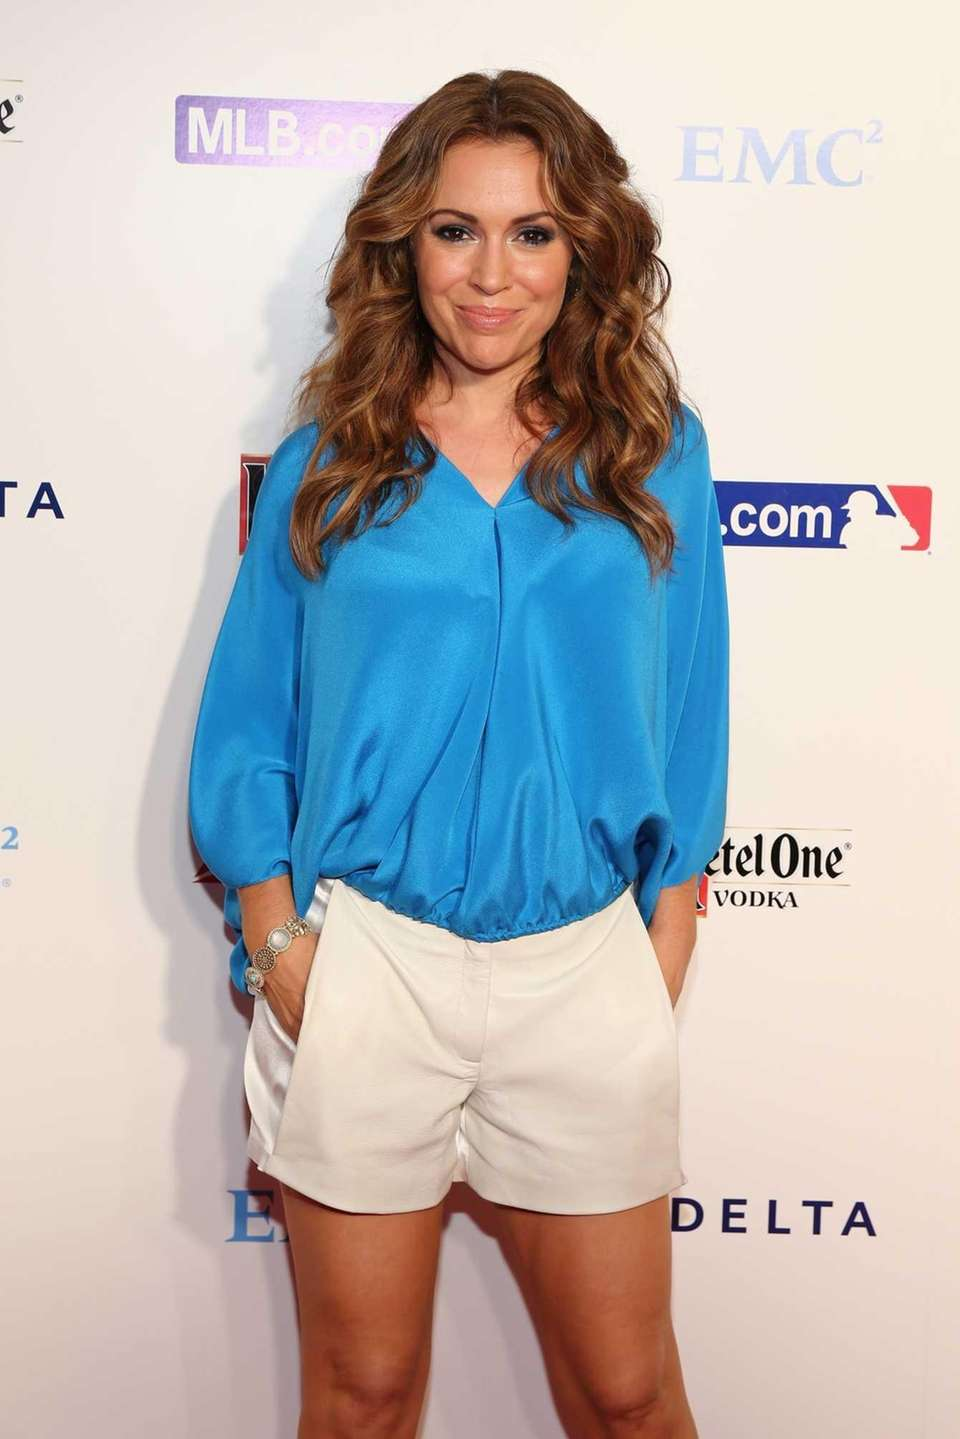 Actress Alyssa Milano has been a longtime supporter